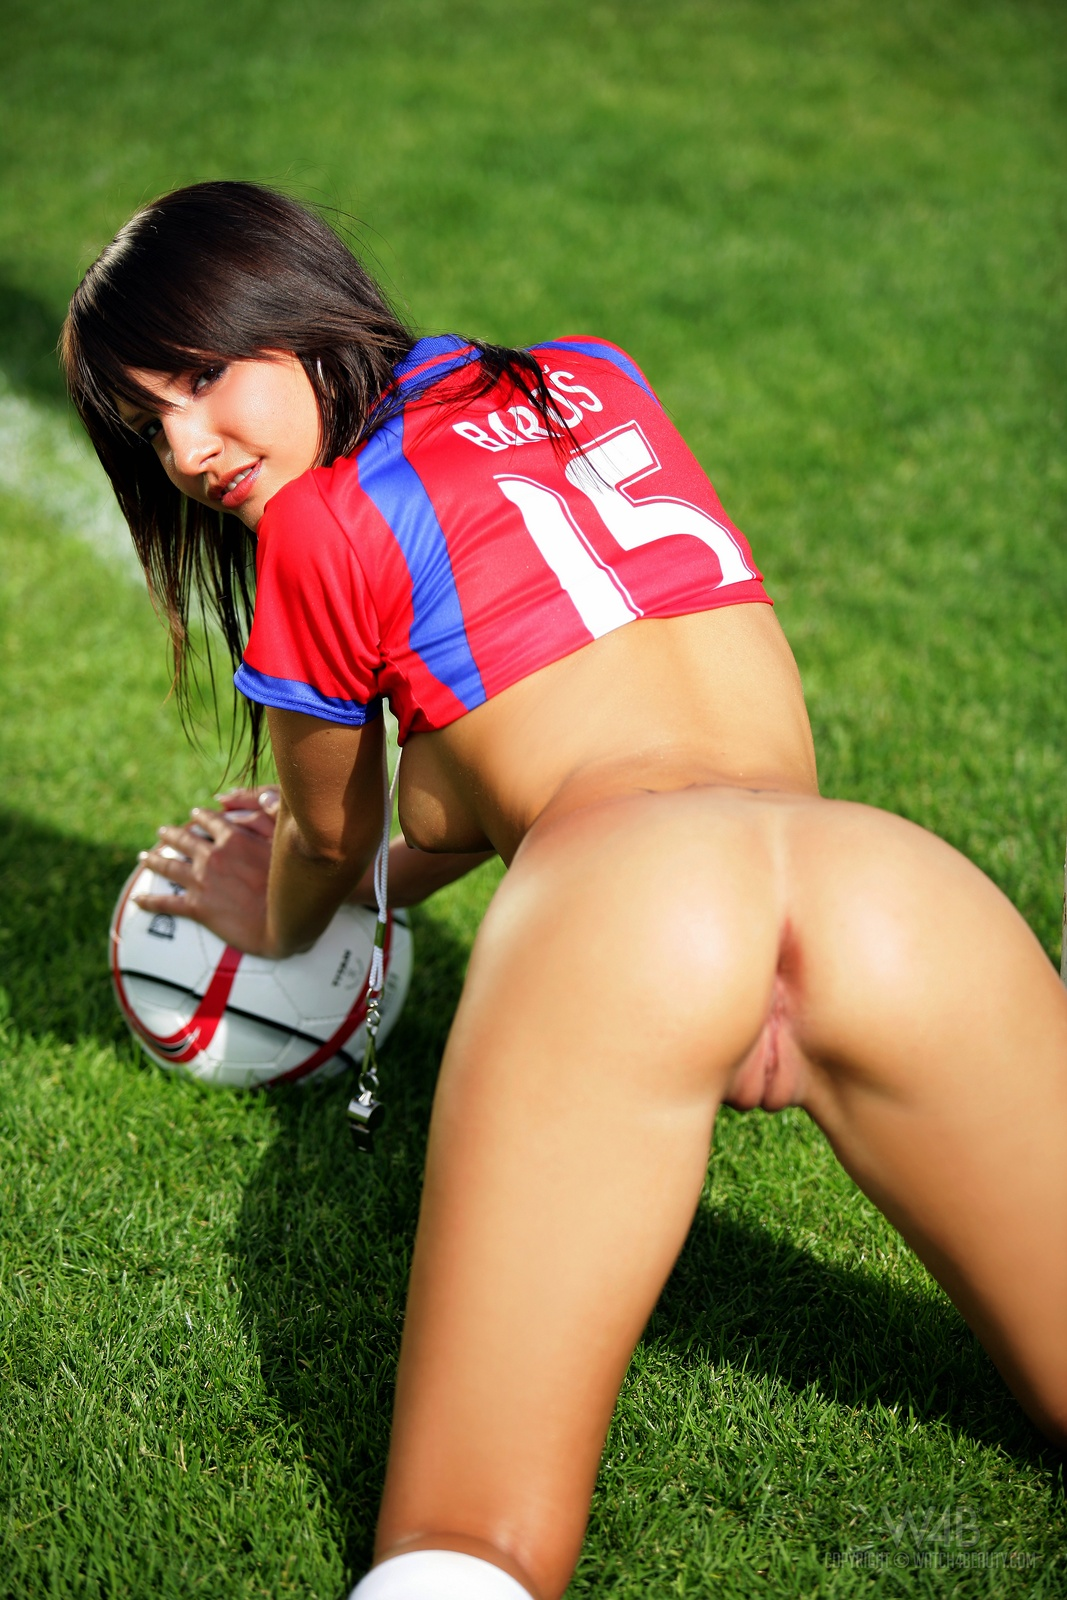 monika-vesela-nude-football-watch4beauty-13